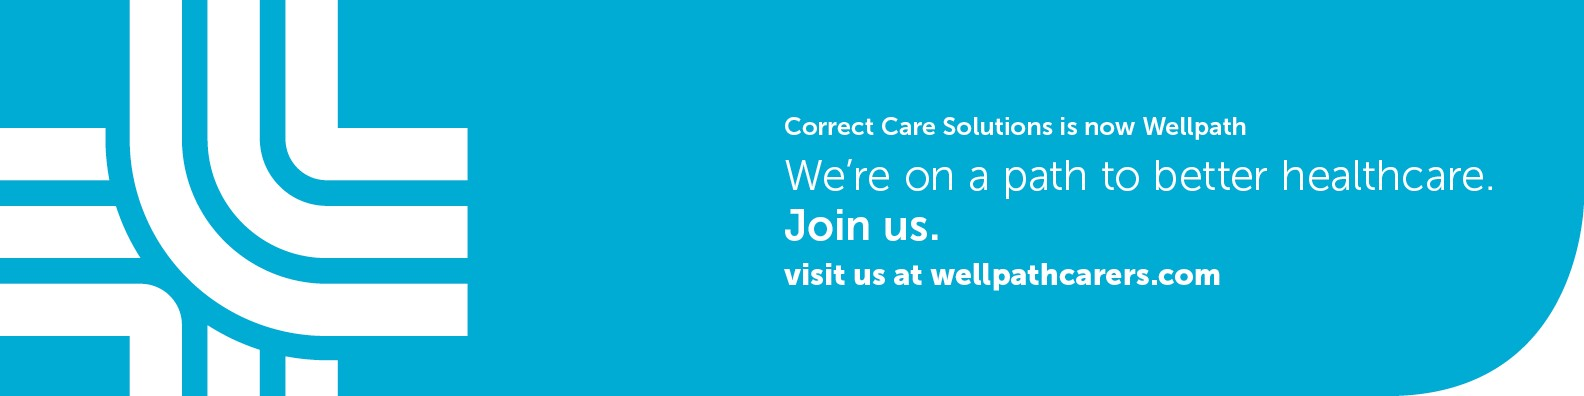 Correct Care Solutions | LinkedIn